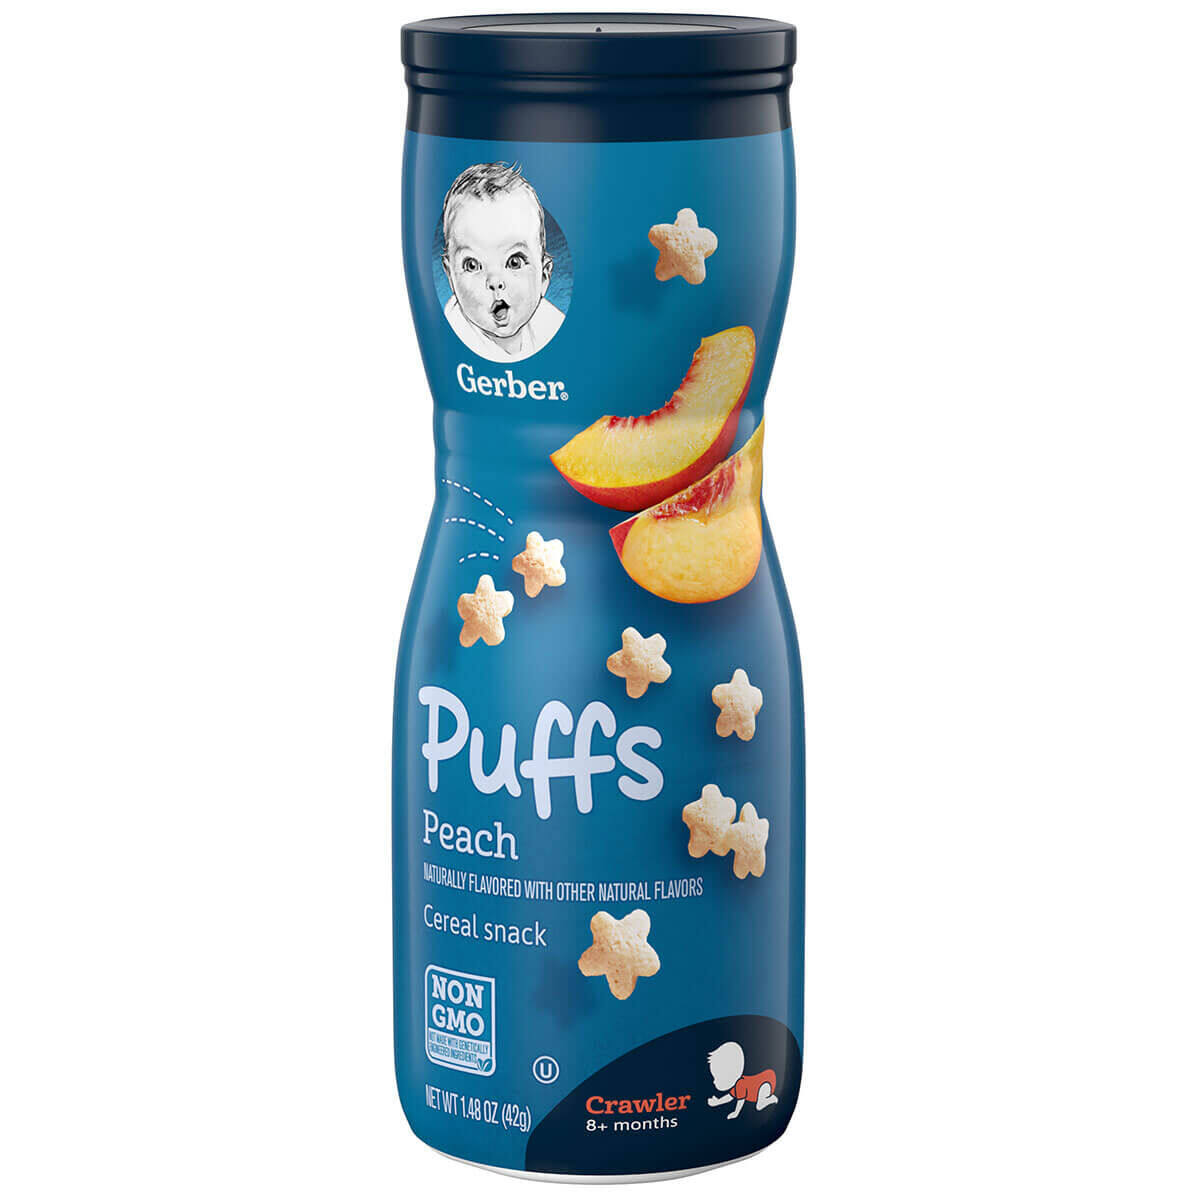 Gerber Puffs Cereal Snack Peach (42g / 1.48 OZ x 2) - TWIN PACK